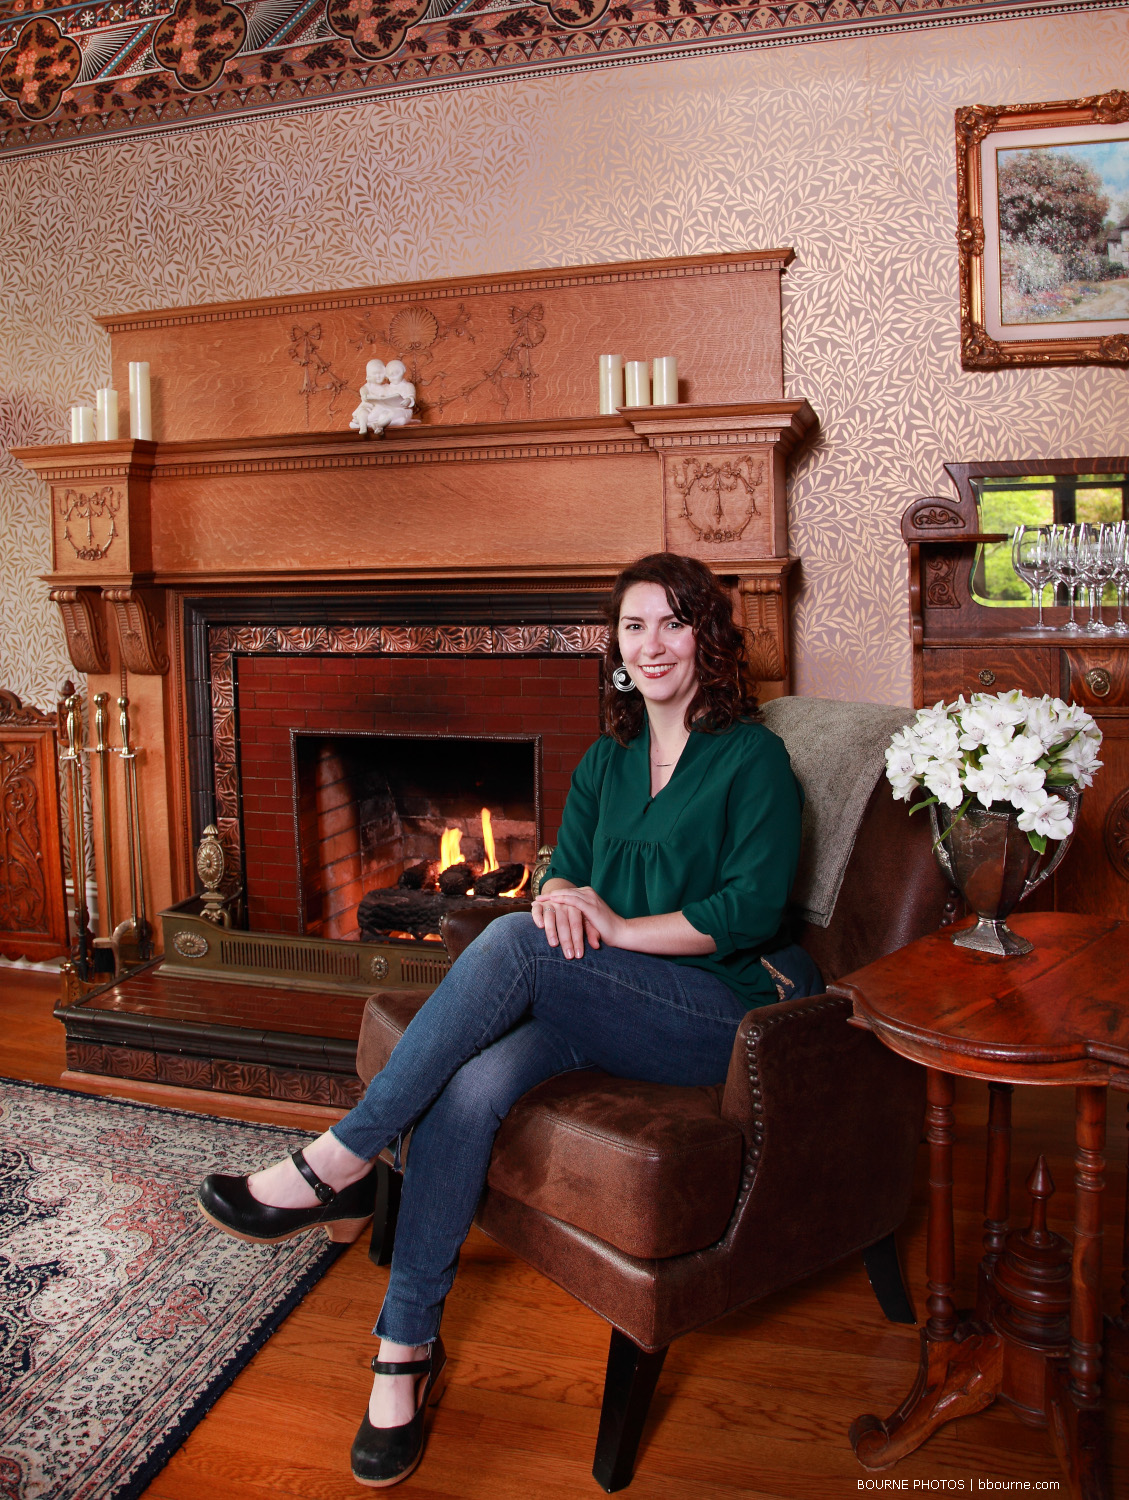 Oceanna posing and sitting in chair in front of fireplace and mantle with small table beside.